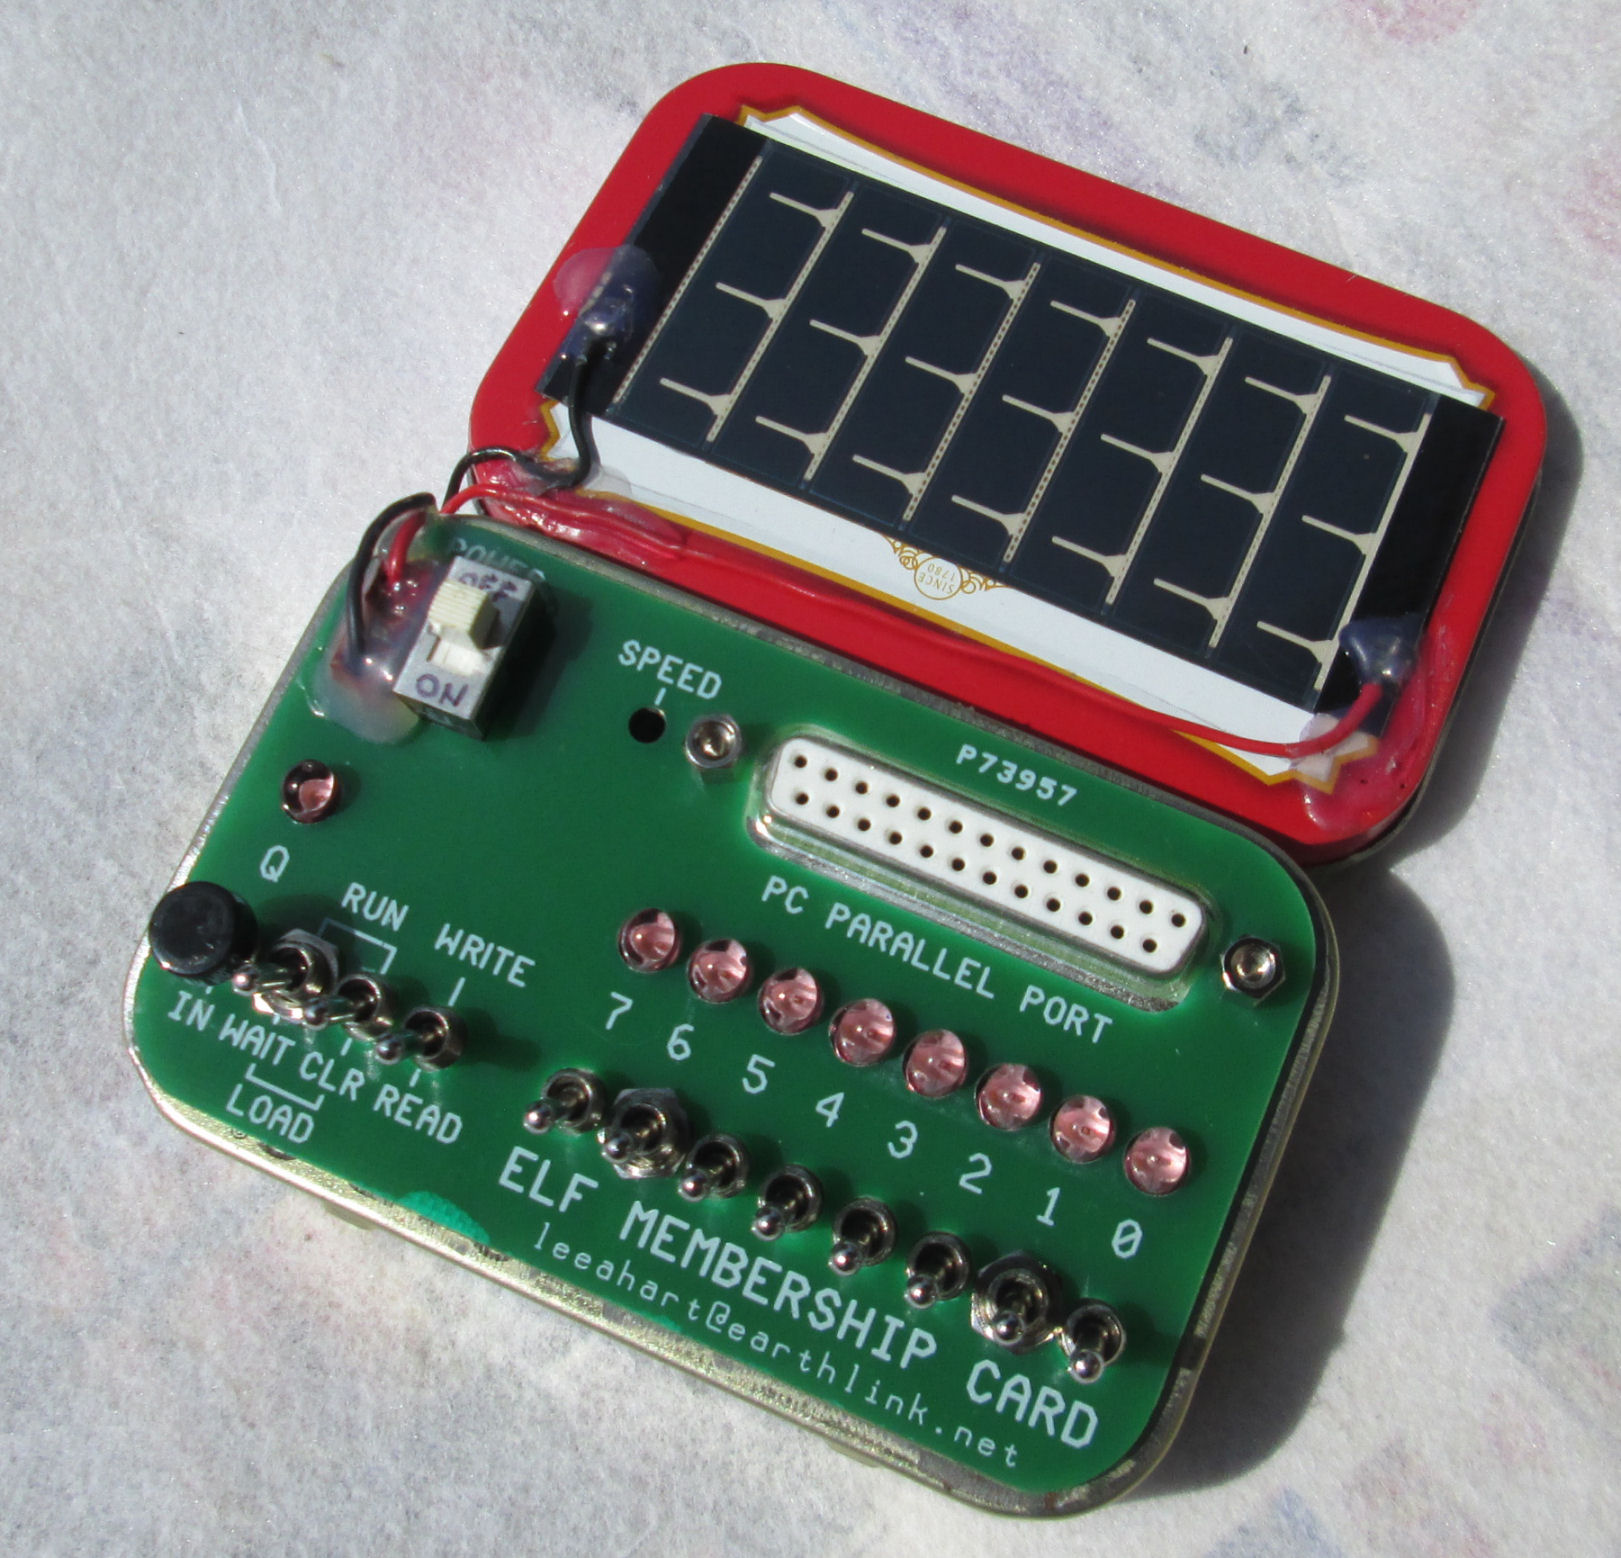 Solar Powered Cosmac Led From Radioshack Not A High Simple 20ma Specetc